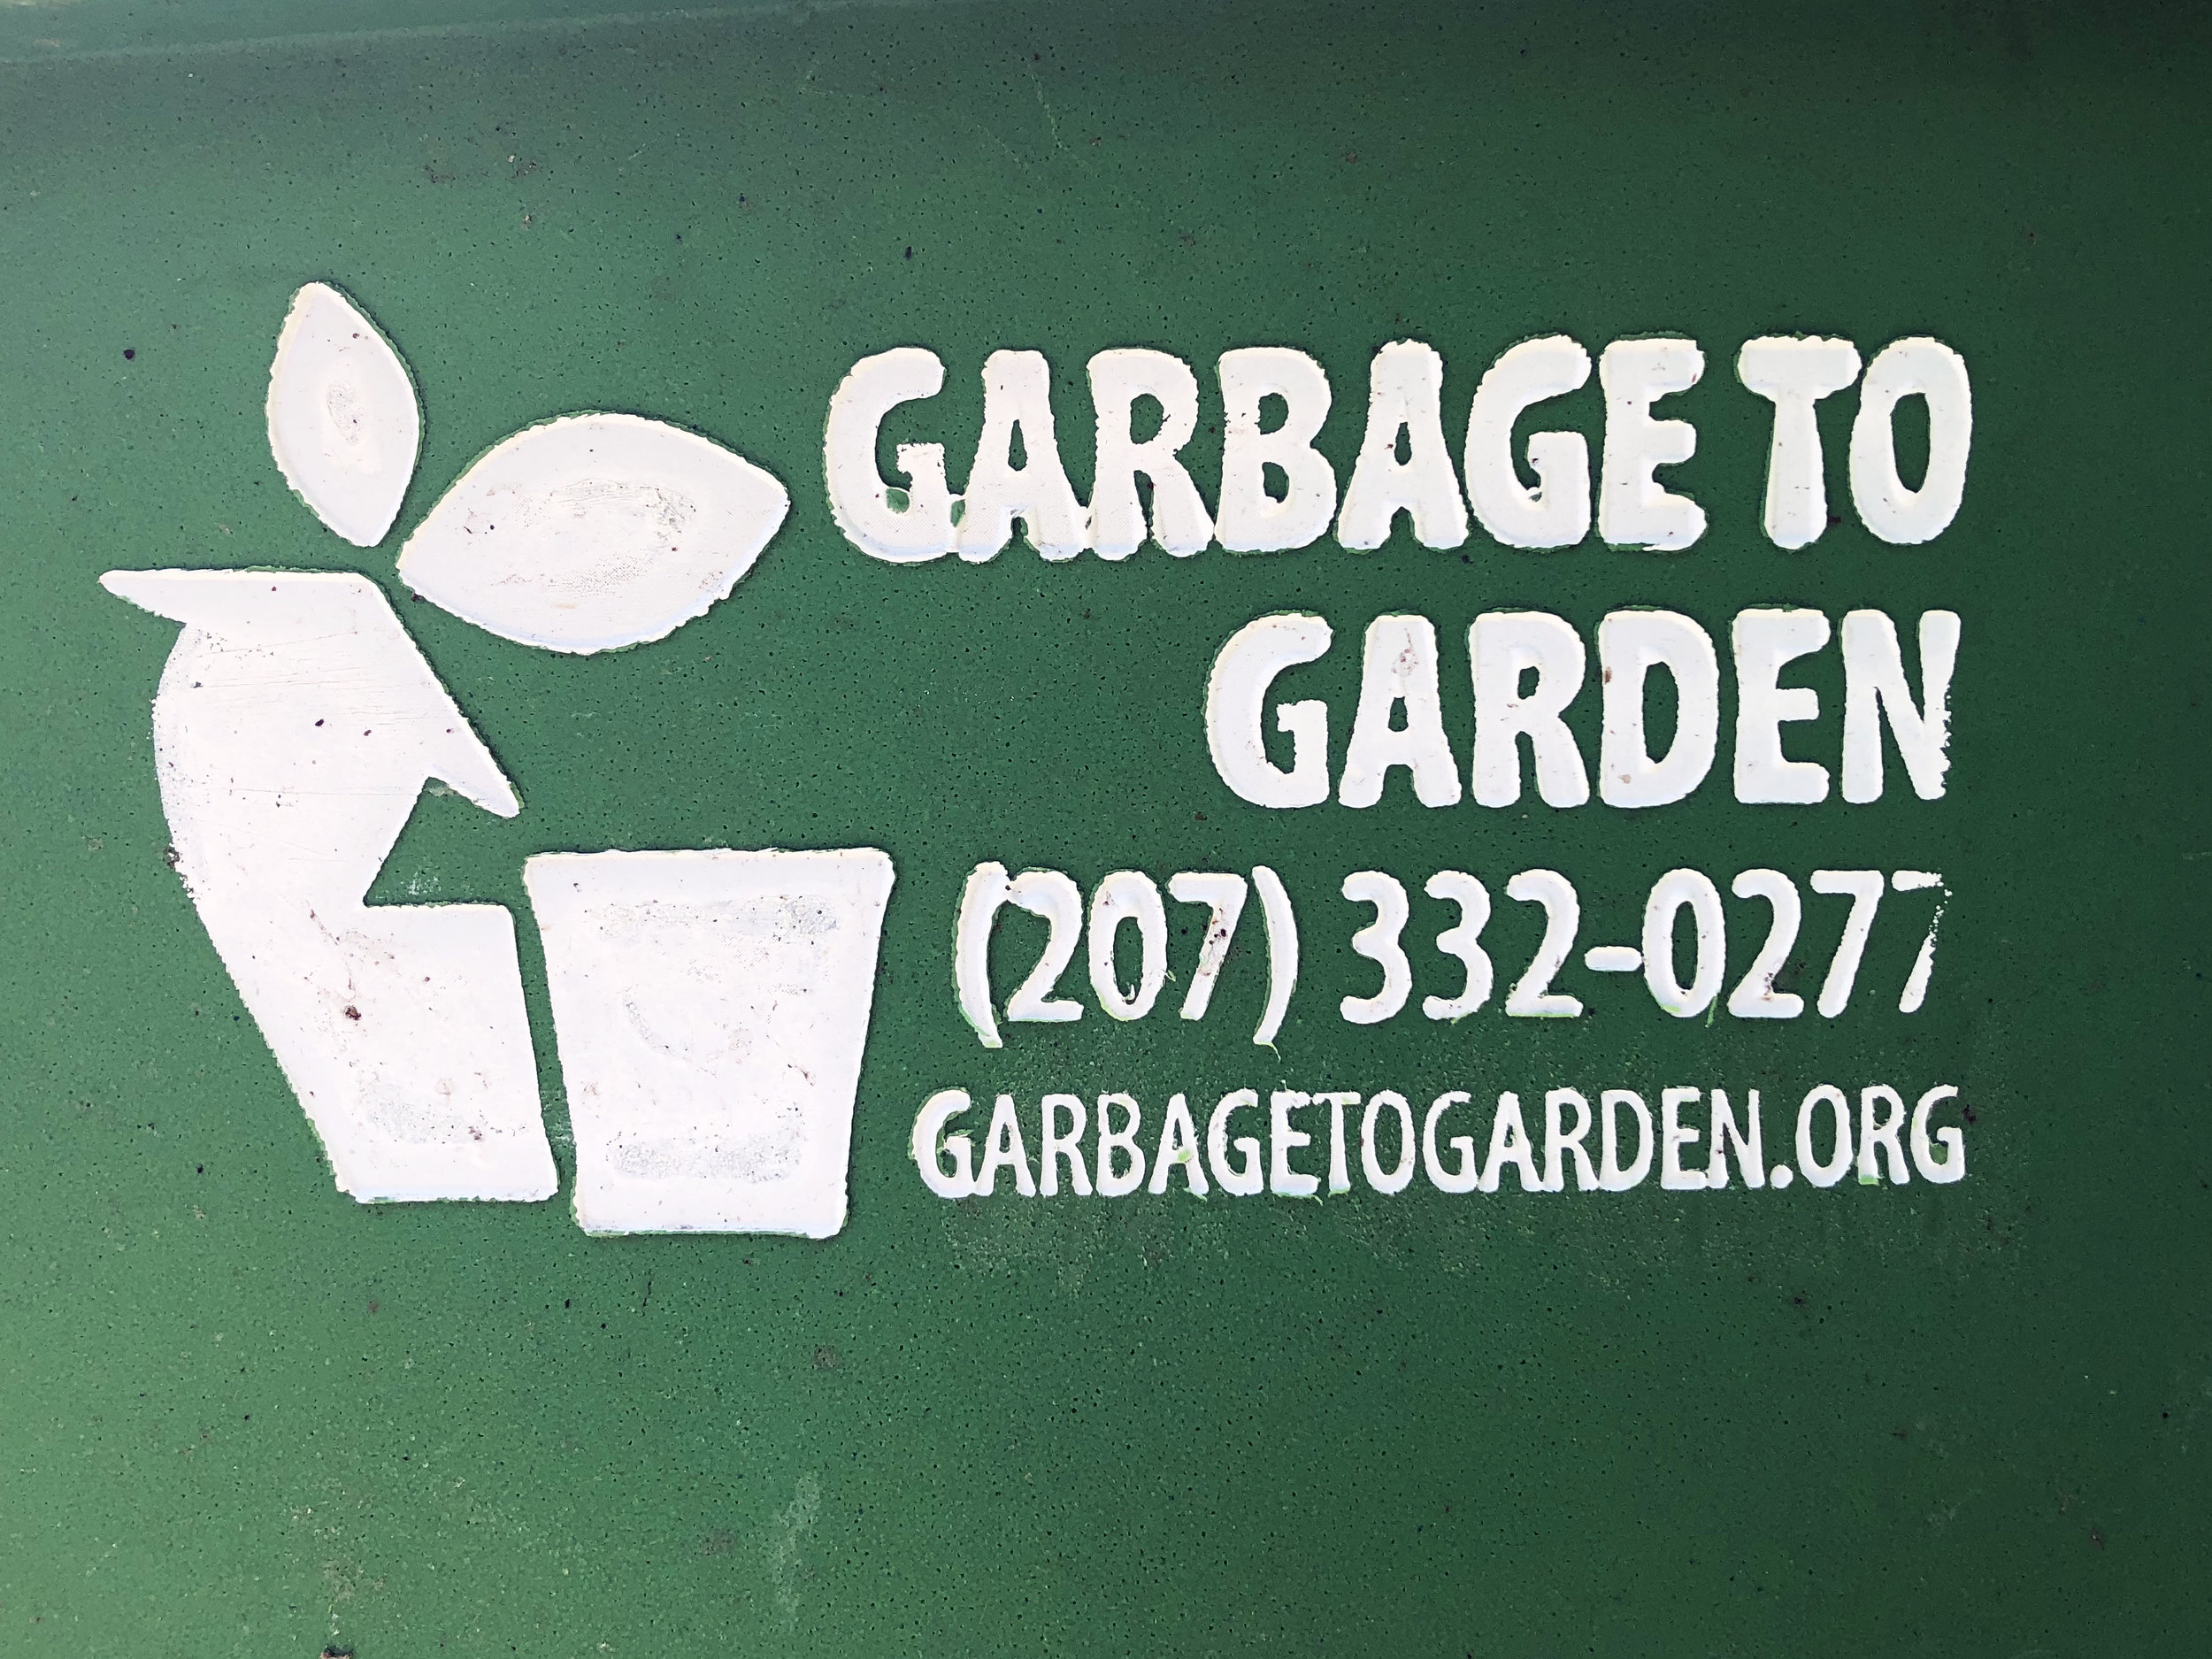 garbage to garden - We compost our natural waste from the brewing process as well as biodegradable paper products and other natural materials. Local company, Garbage to Garden comes by and picks up our bins for compost fertilizer use around the area.